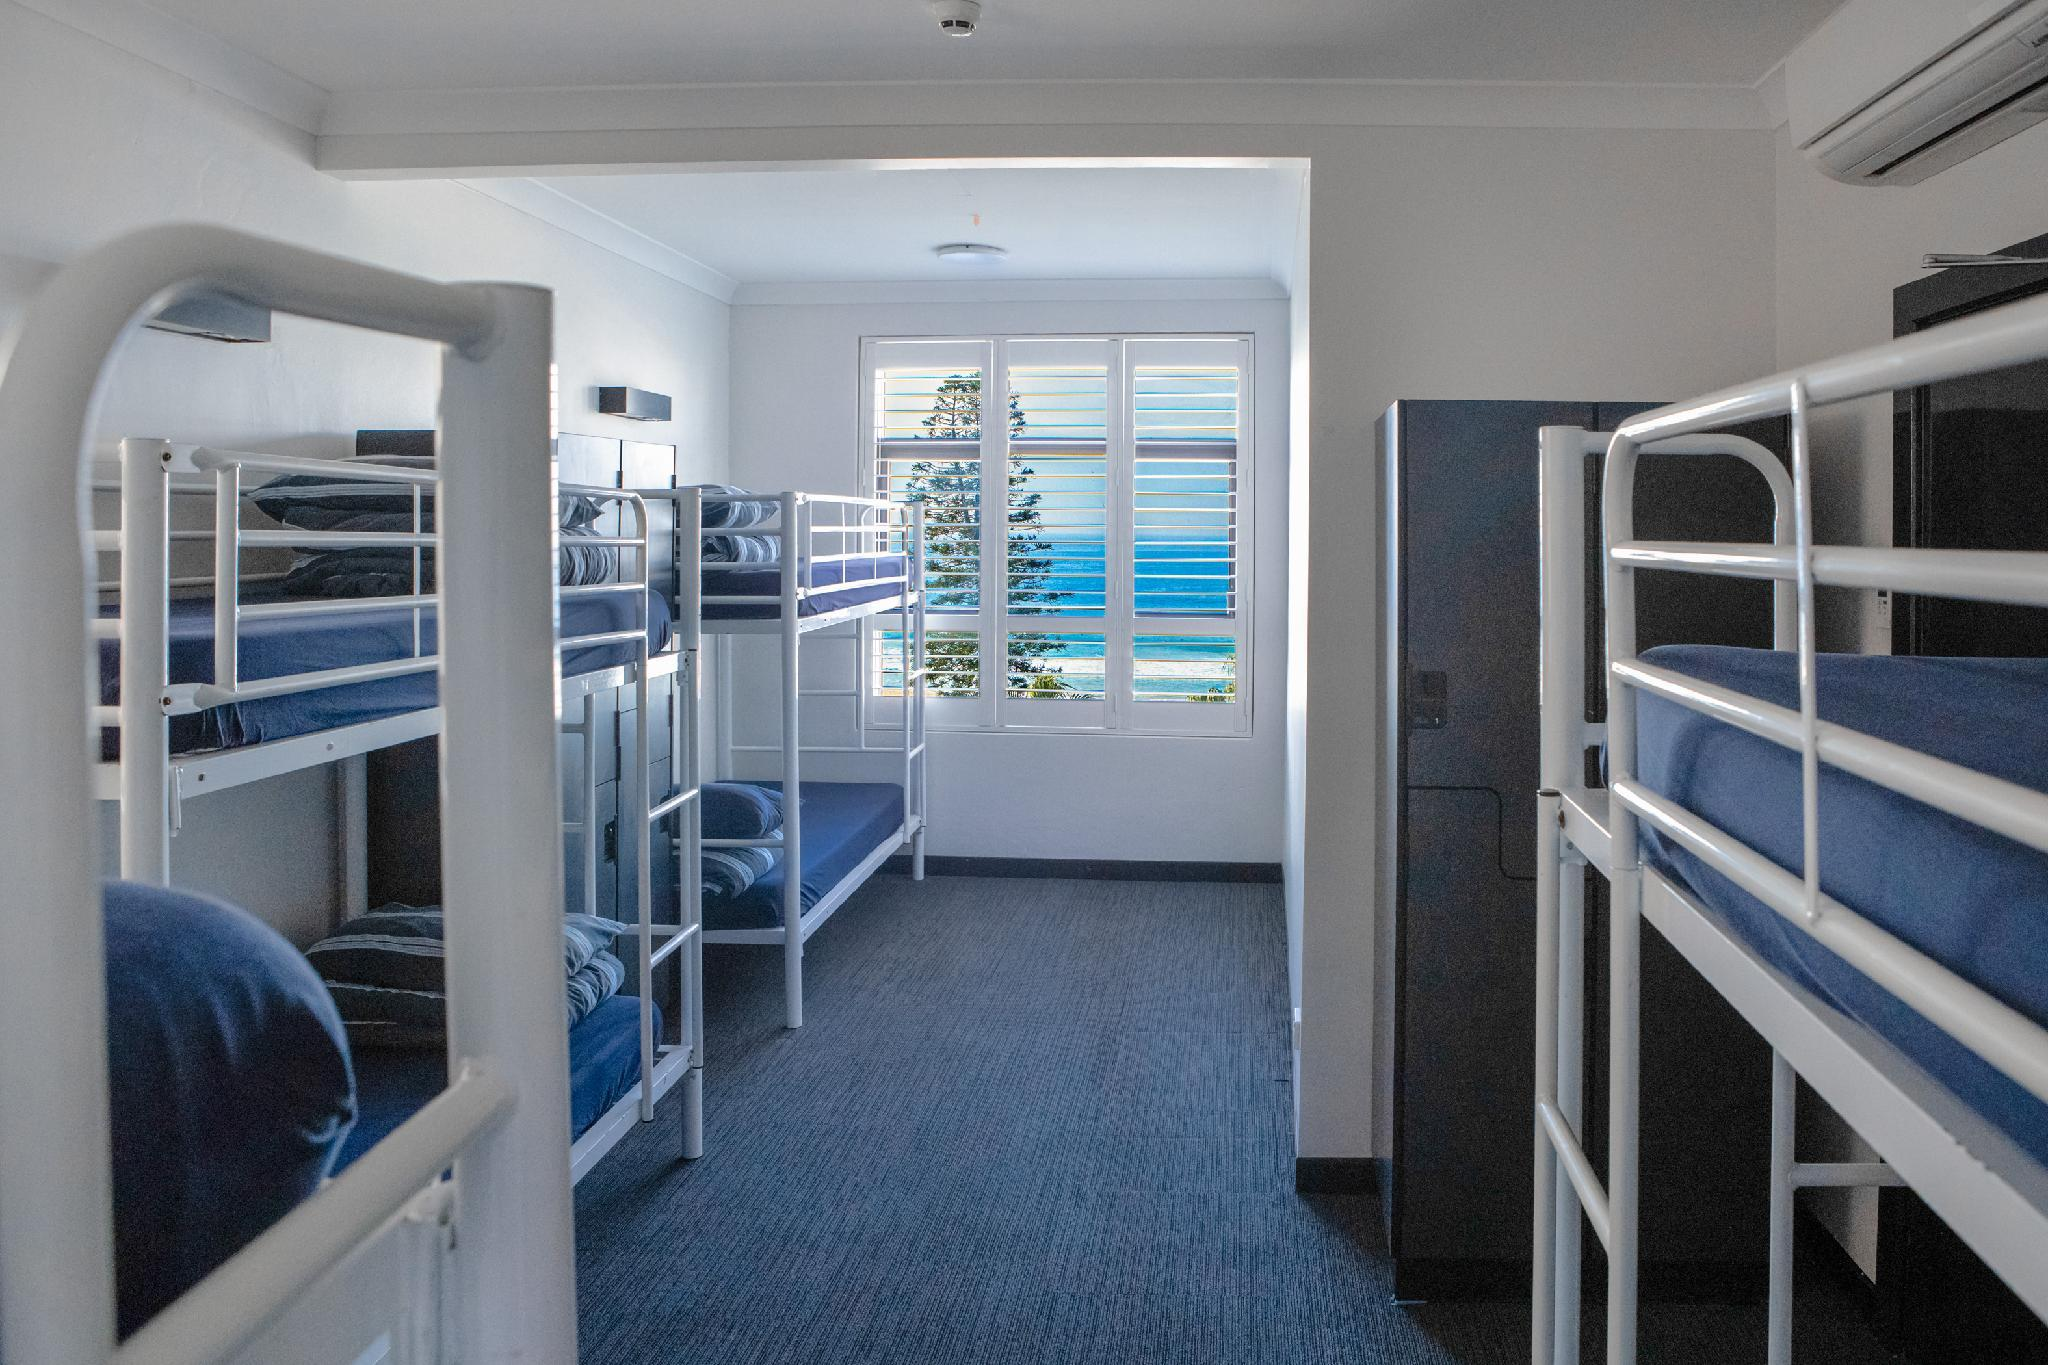 1 Person in 8-Bed Ocean View Dormitory - Mixed